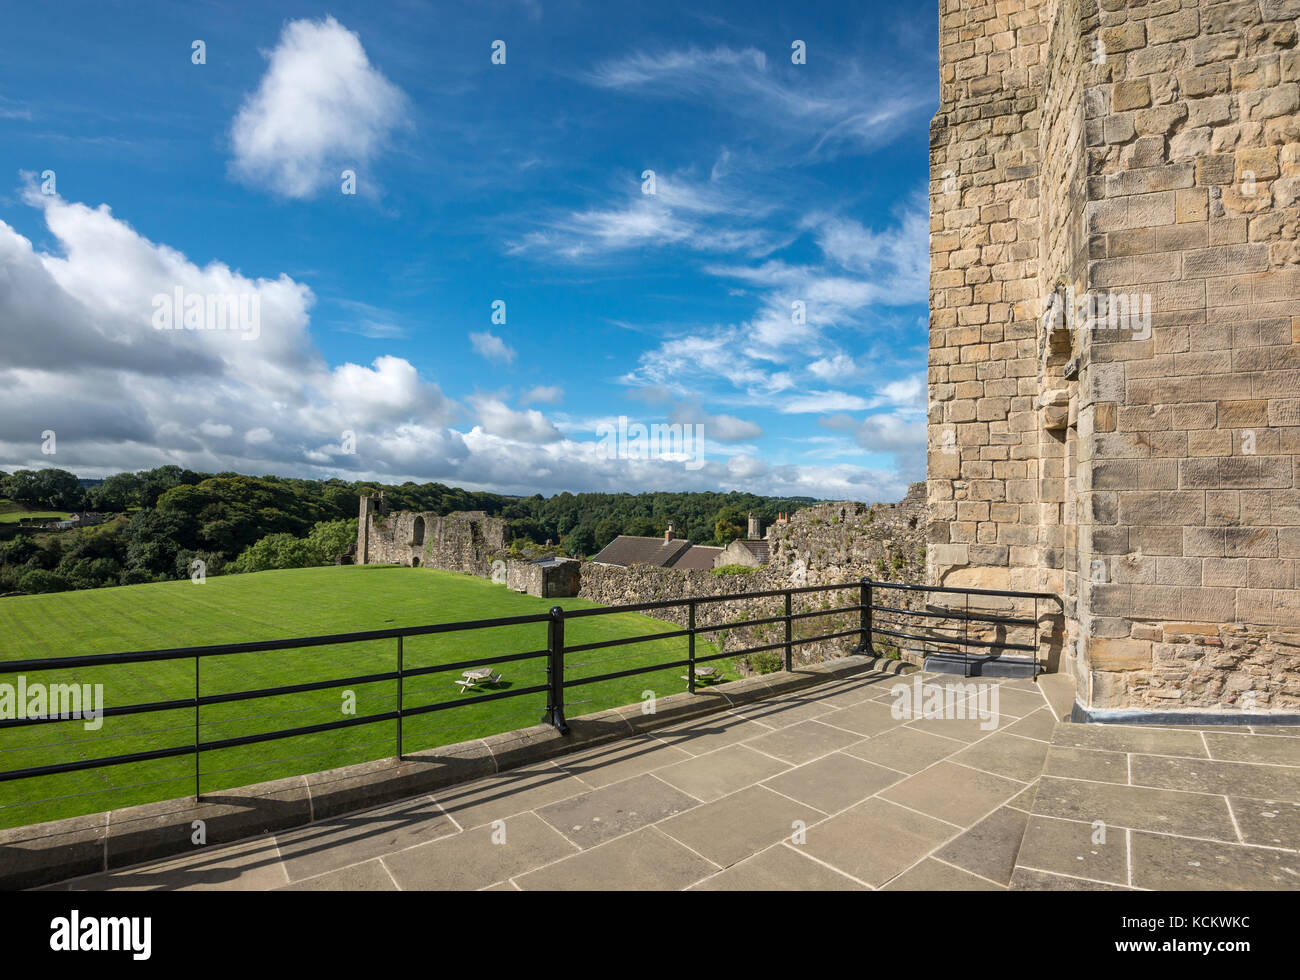 View from the castle keep at Richmond Castle, North Yorkshire, England. - Stock Image